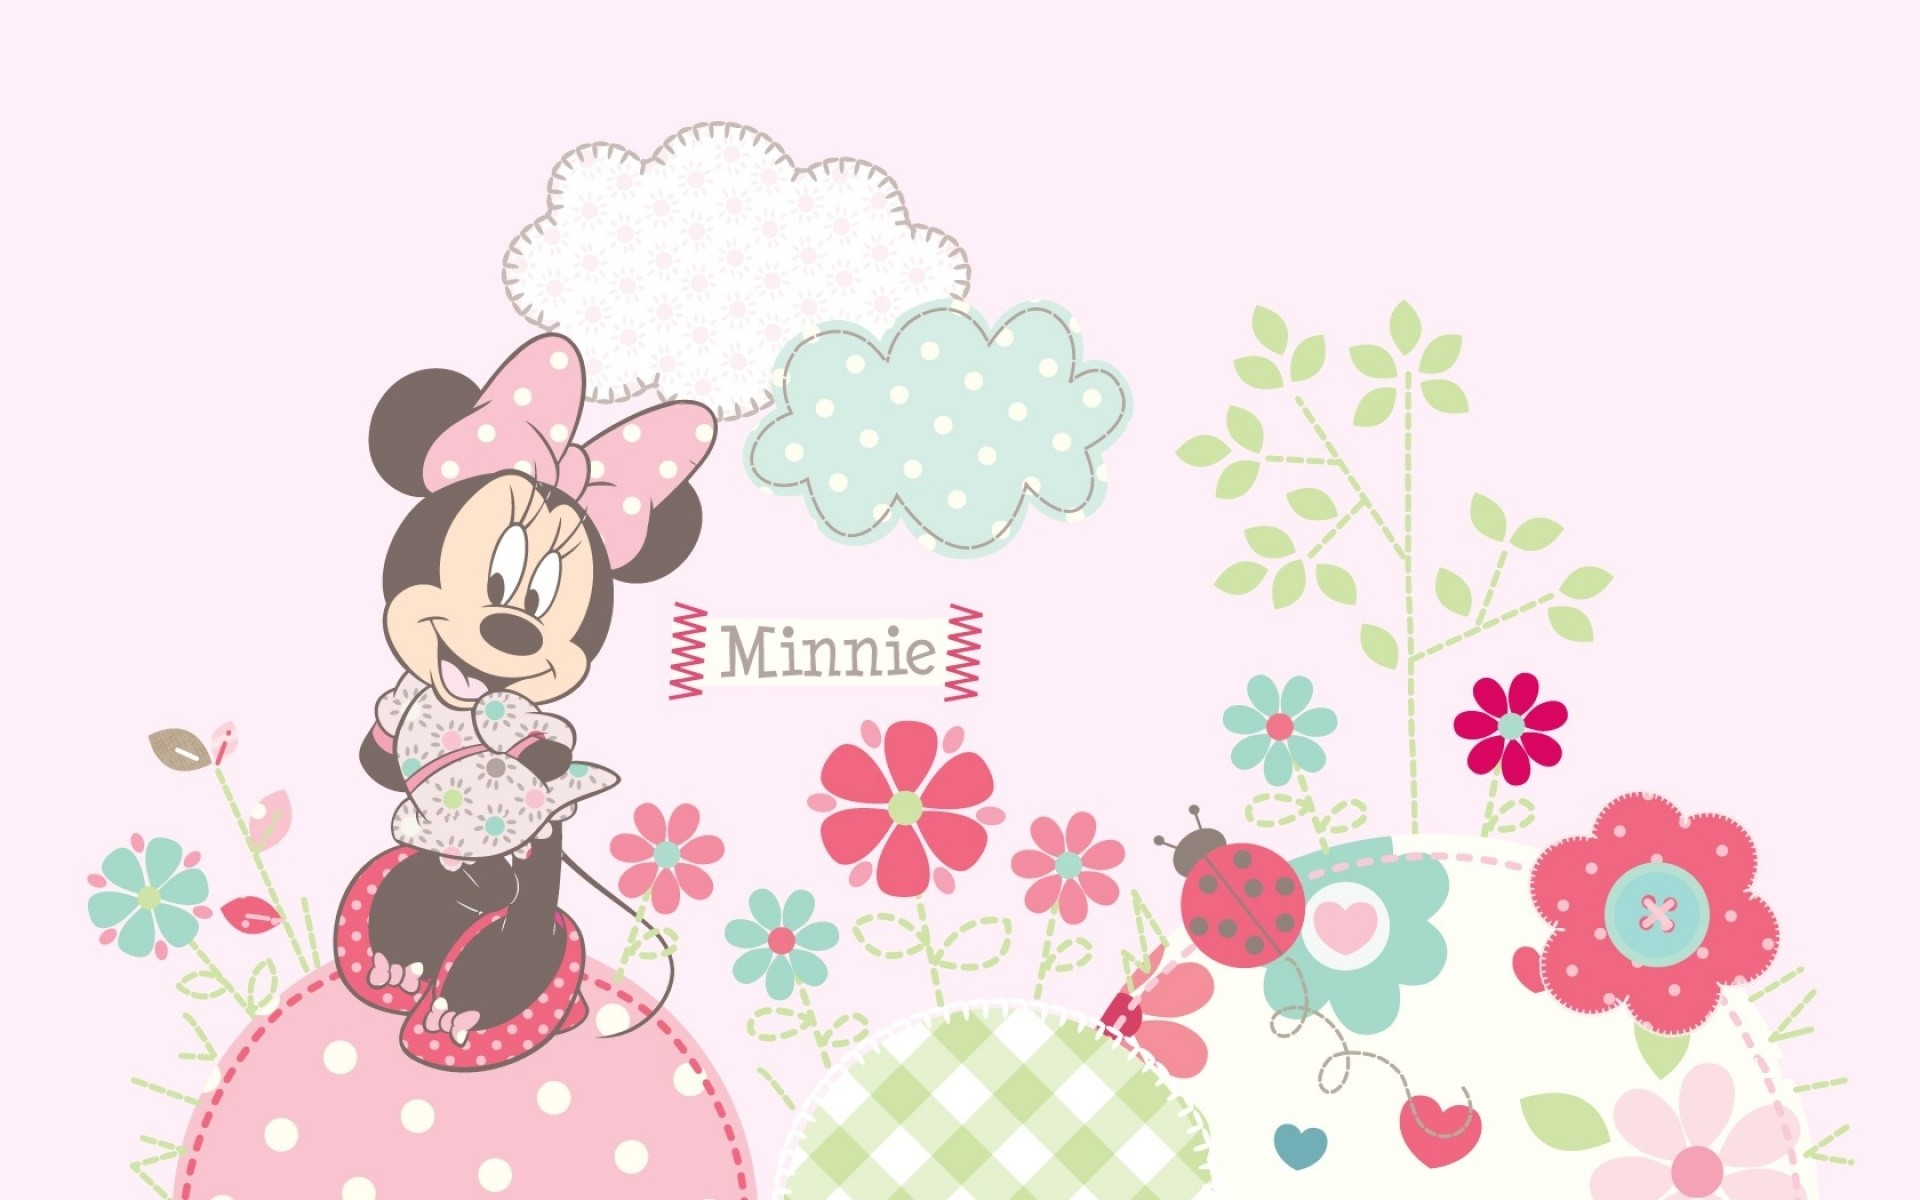 Minnie mouse background download free amazing backgrounds for desktop and mobile devices in - Minnie mouse mobel ...